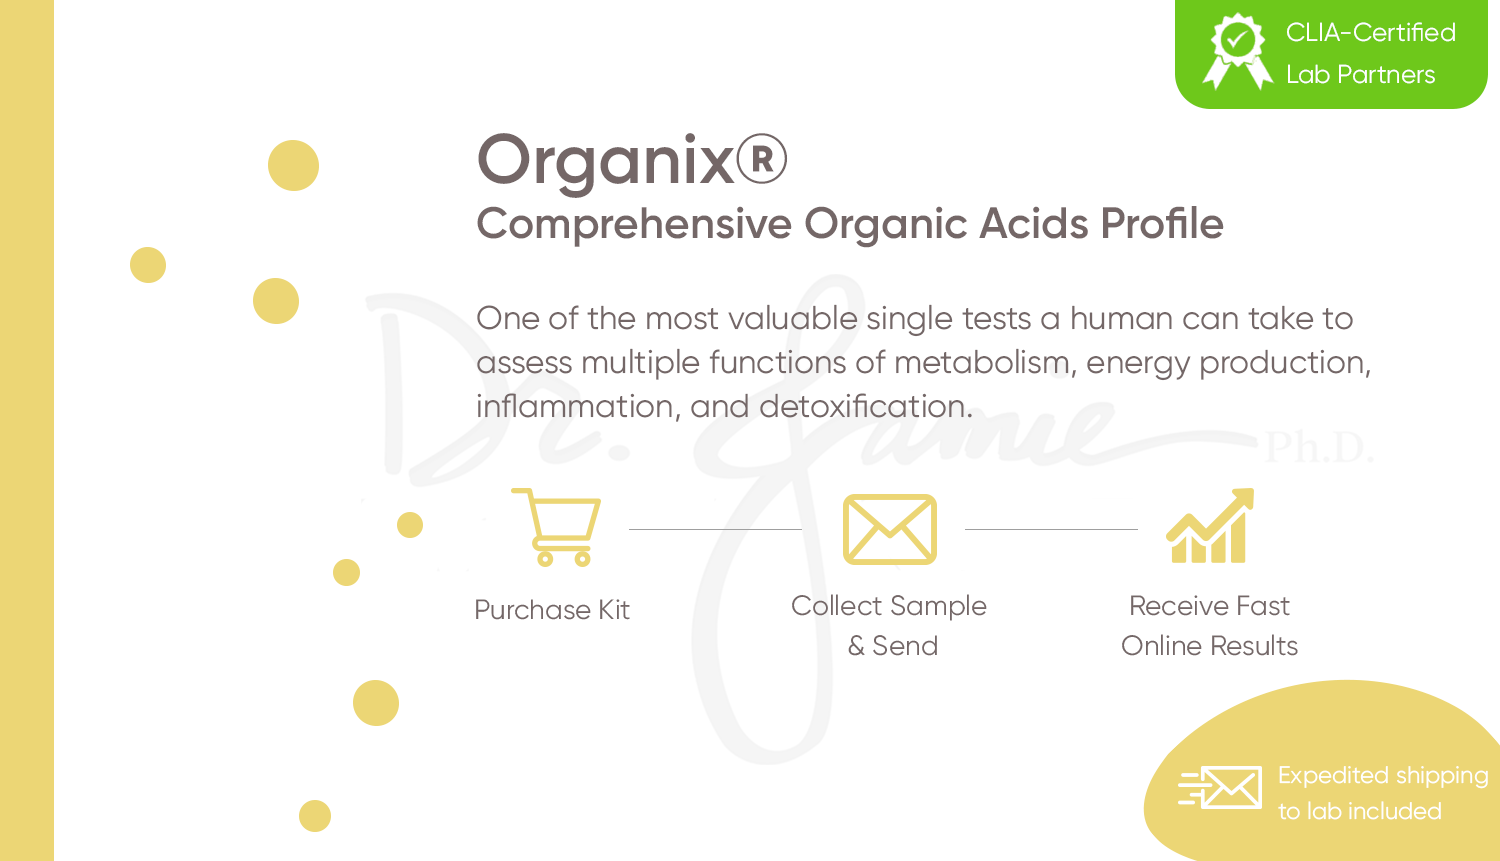 Organix® Comprehensive Organic Acids Profile